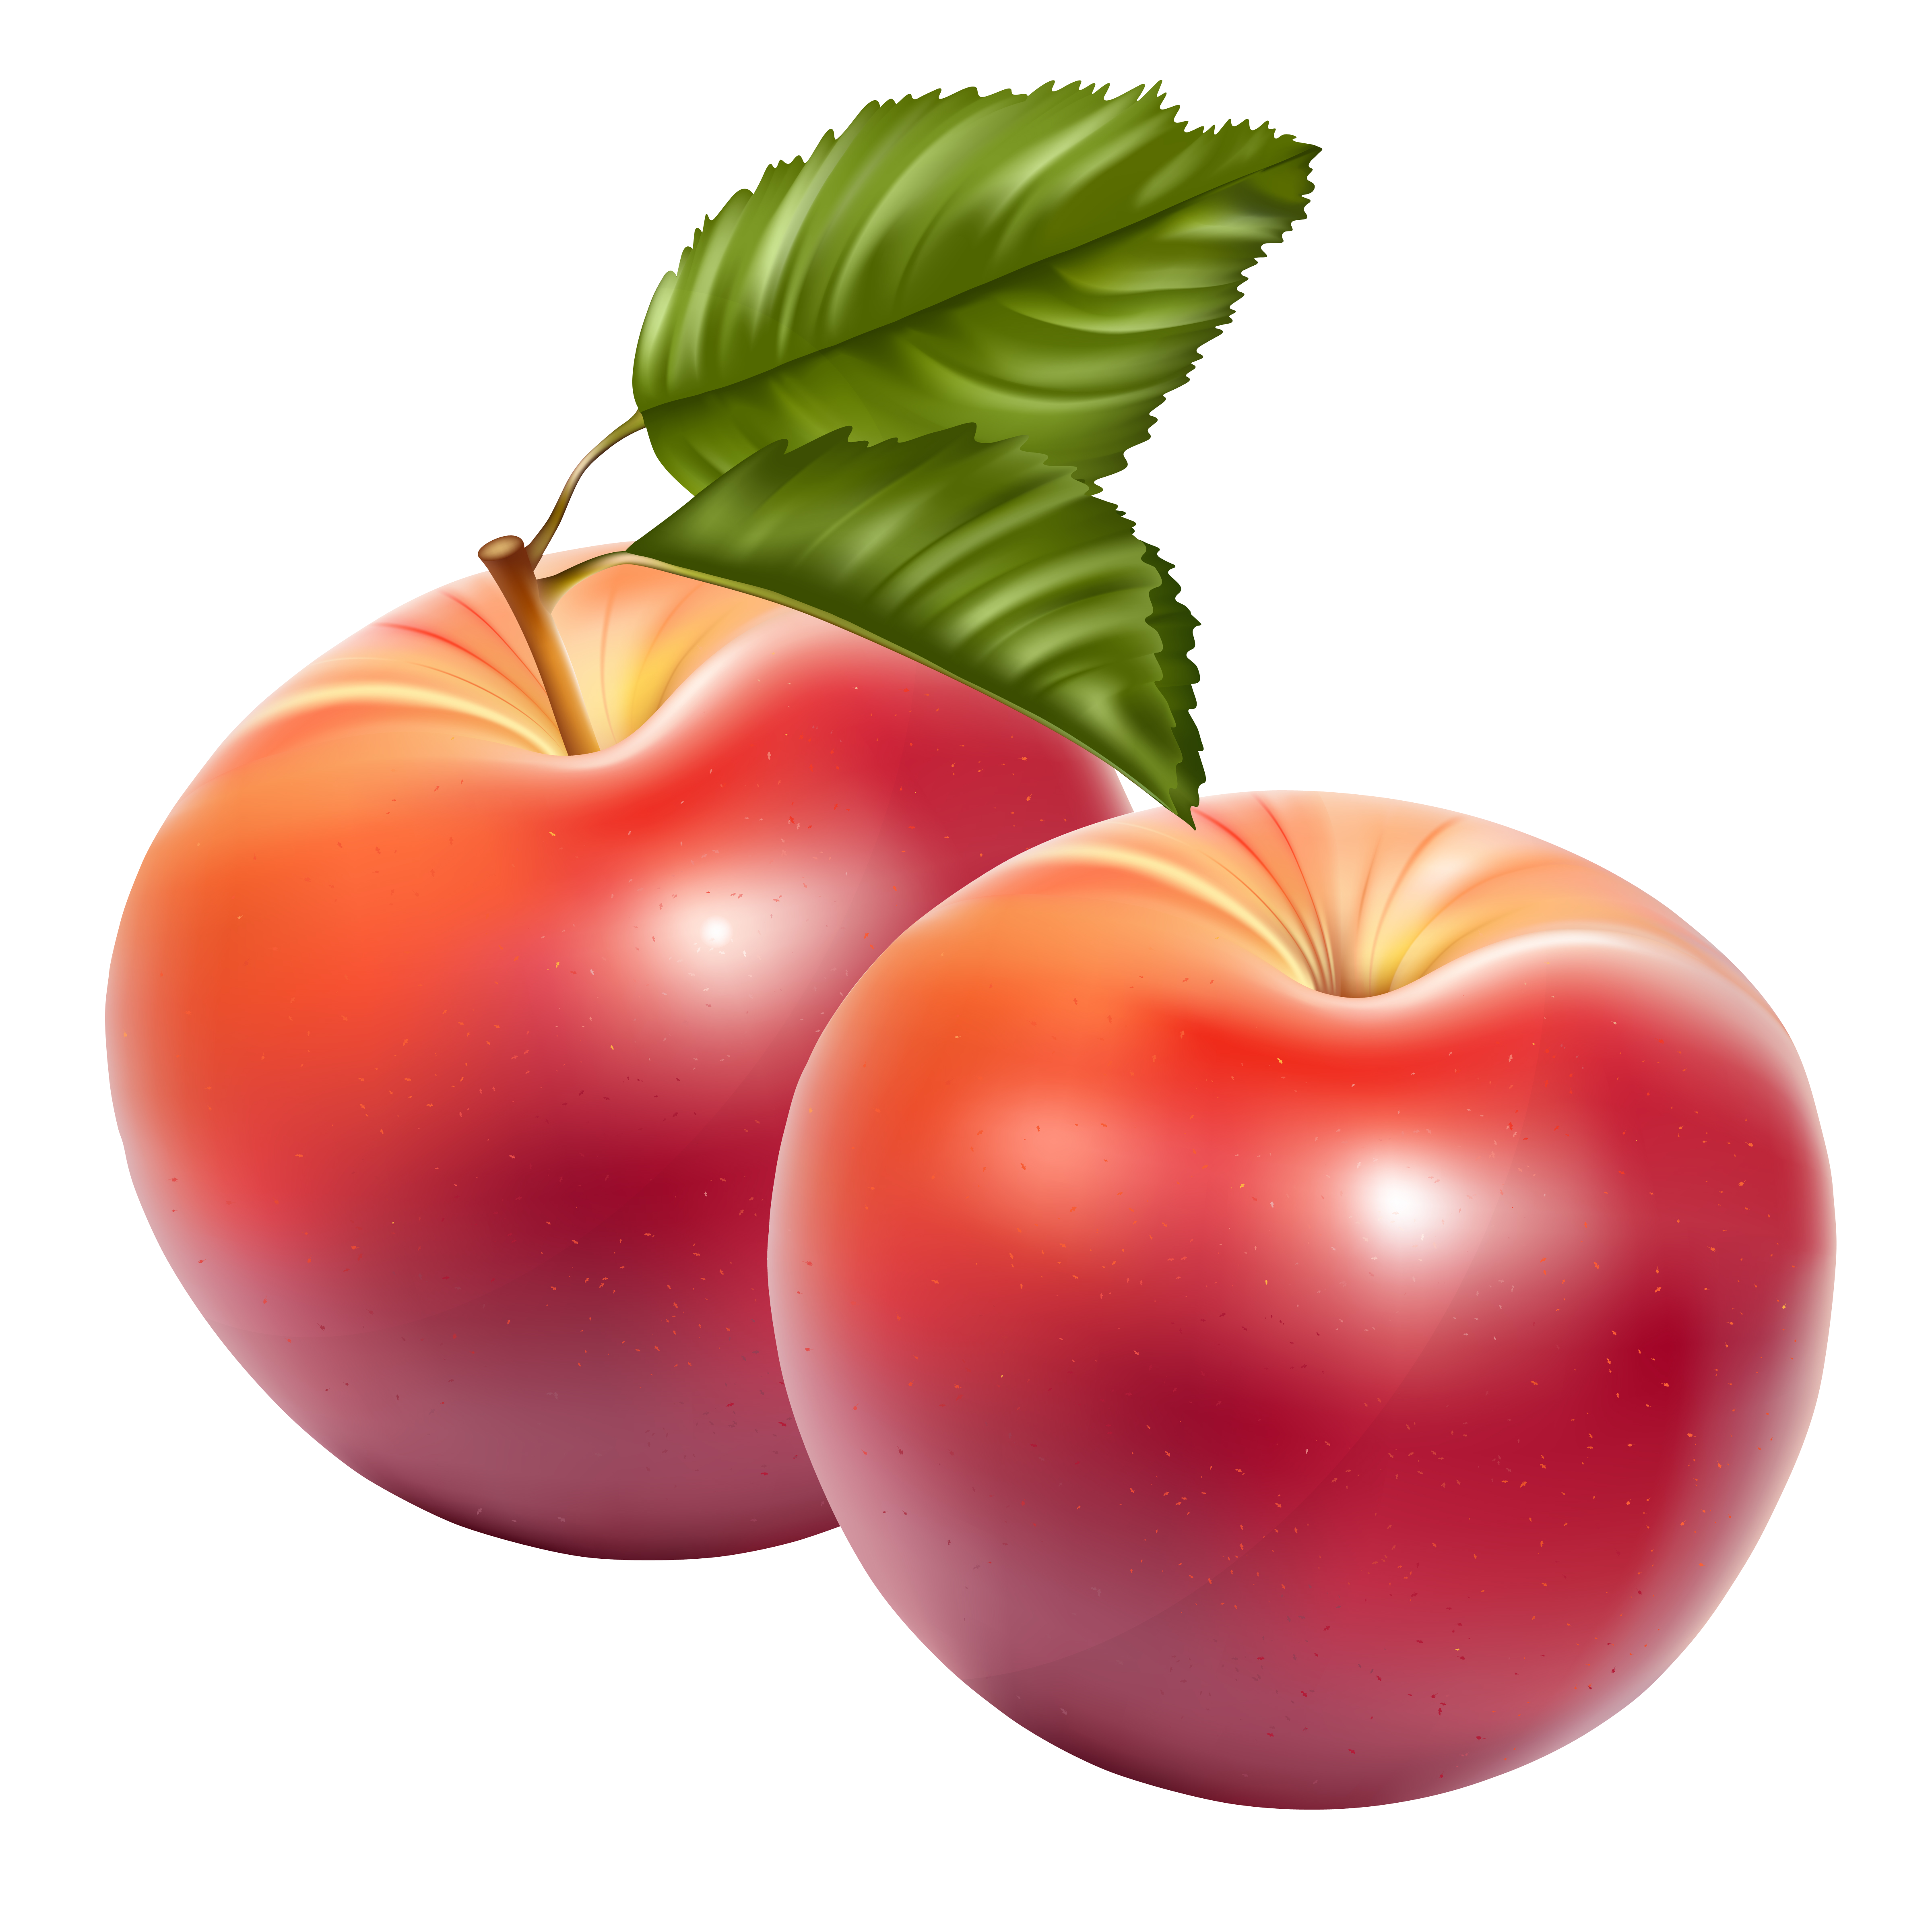 Apple Fruit Png Image PNG Image